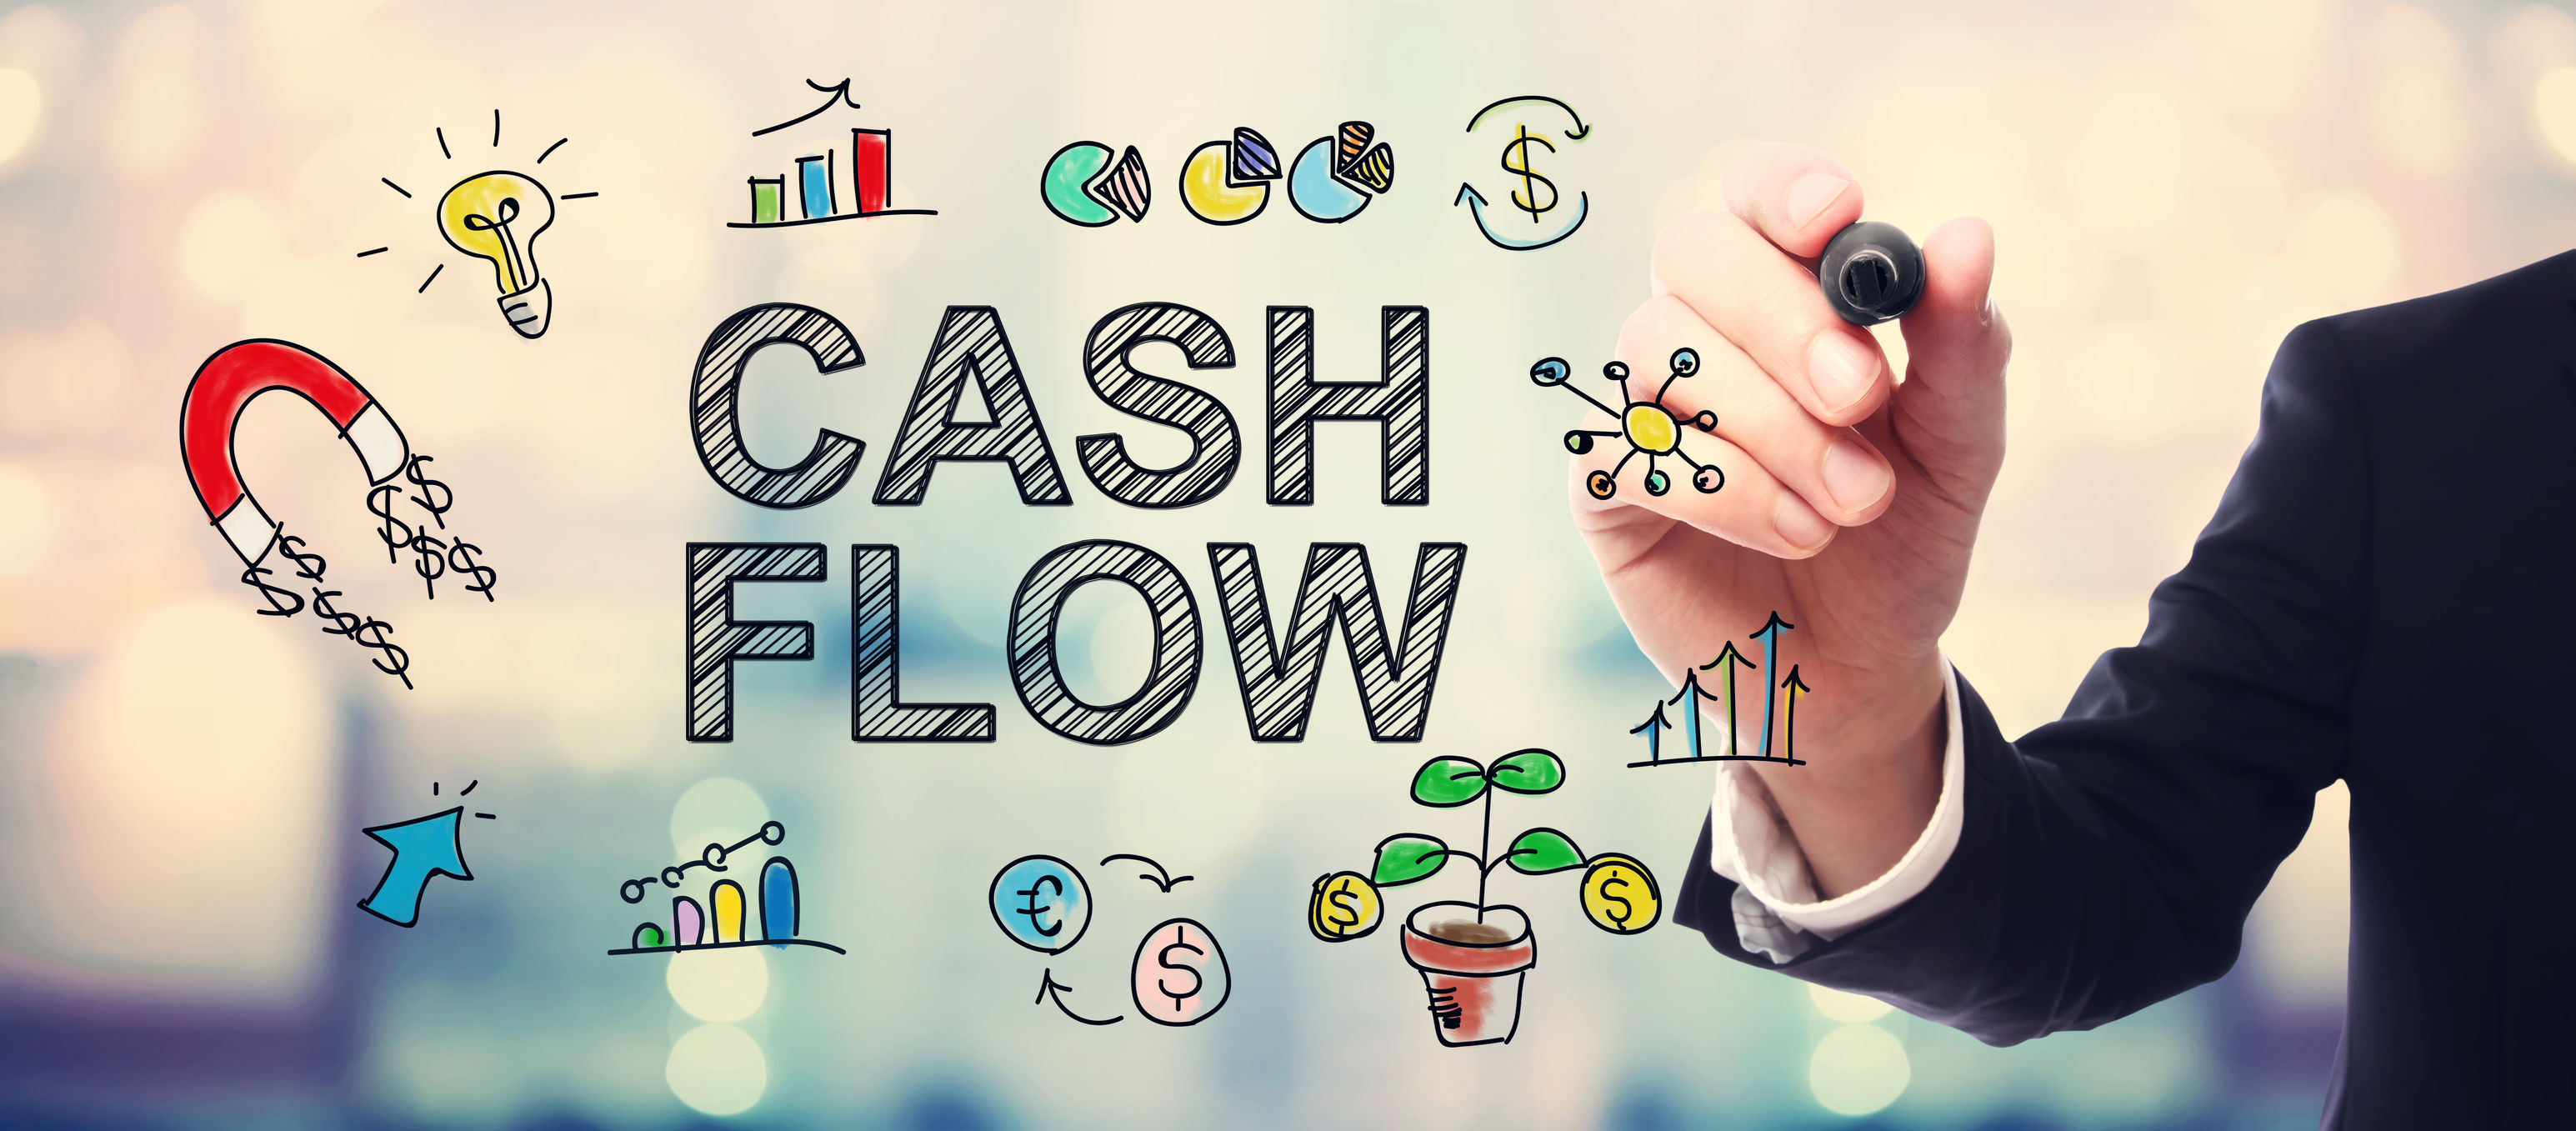 inadequate management of cash flow can cause increased cost of doing business